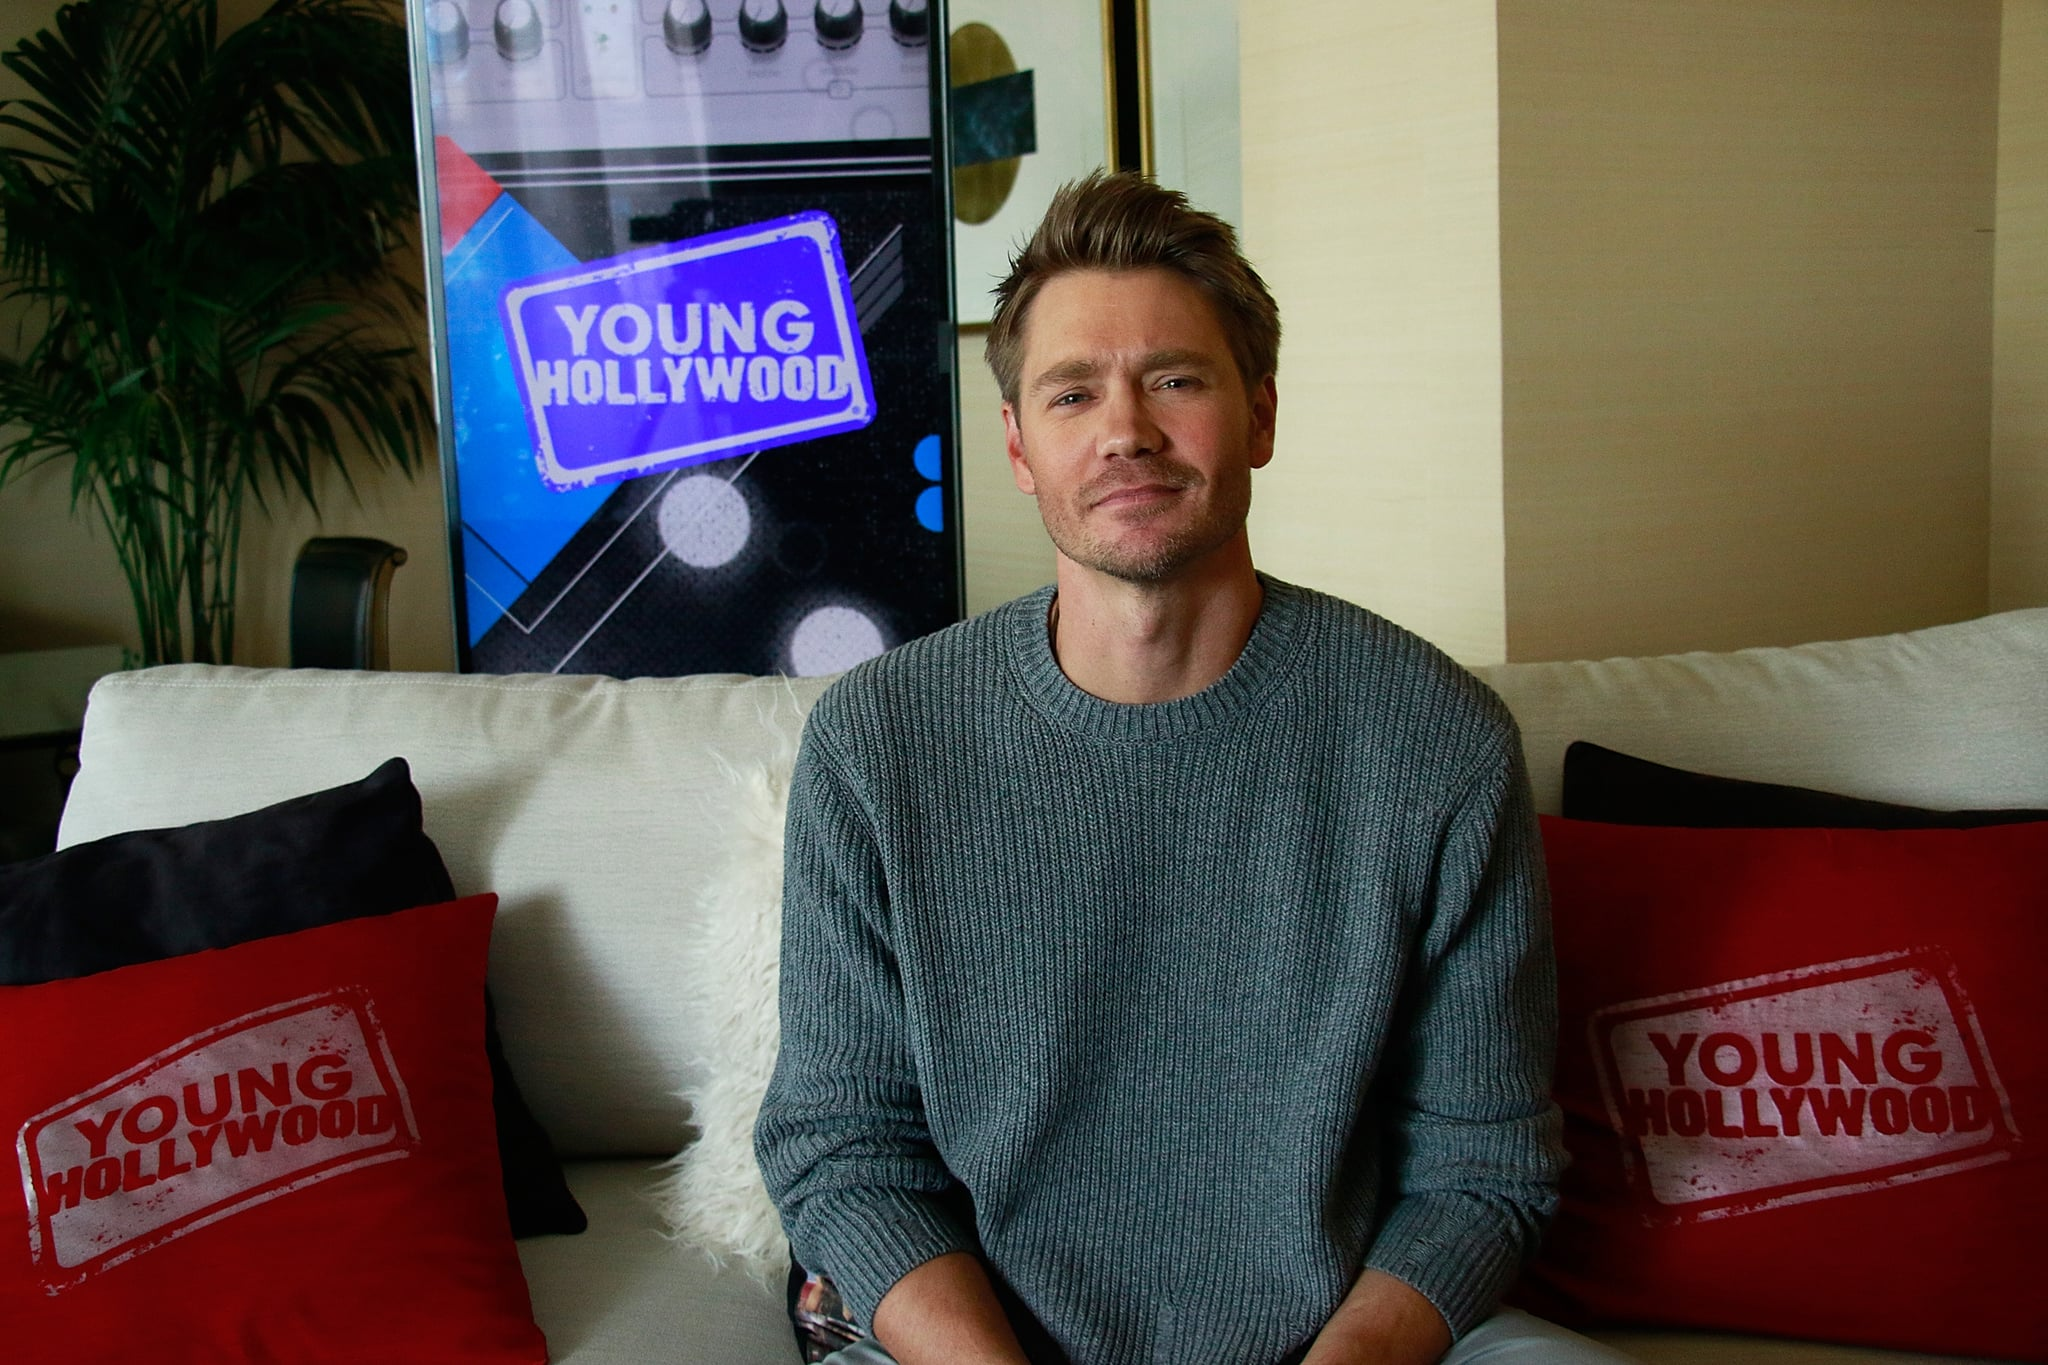 LOS ANGELES, CA - November 21: (EXCLUSIVE COVERAGE) Chad Michael Murray visits the Young Hollywood Studio on November 15, 2017 in Los Angeles, California. (Photo by Derek Martin/Young Hollywood/Getty Images)